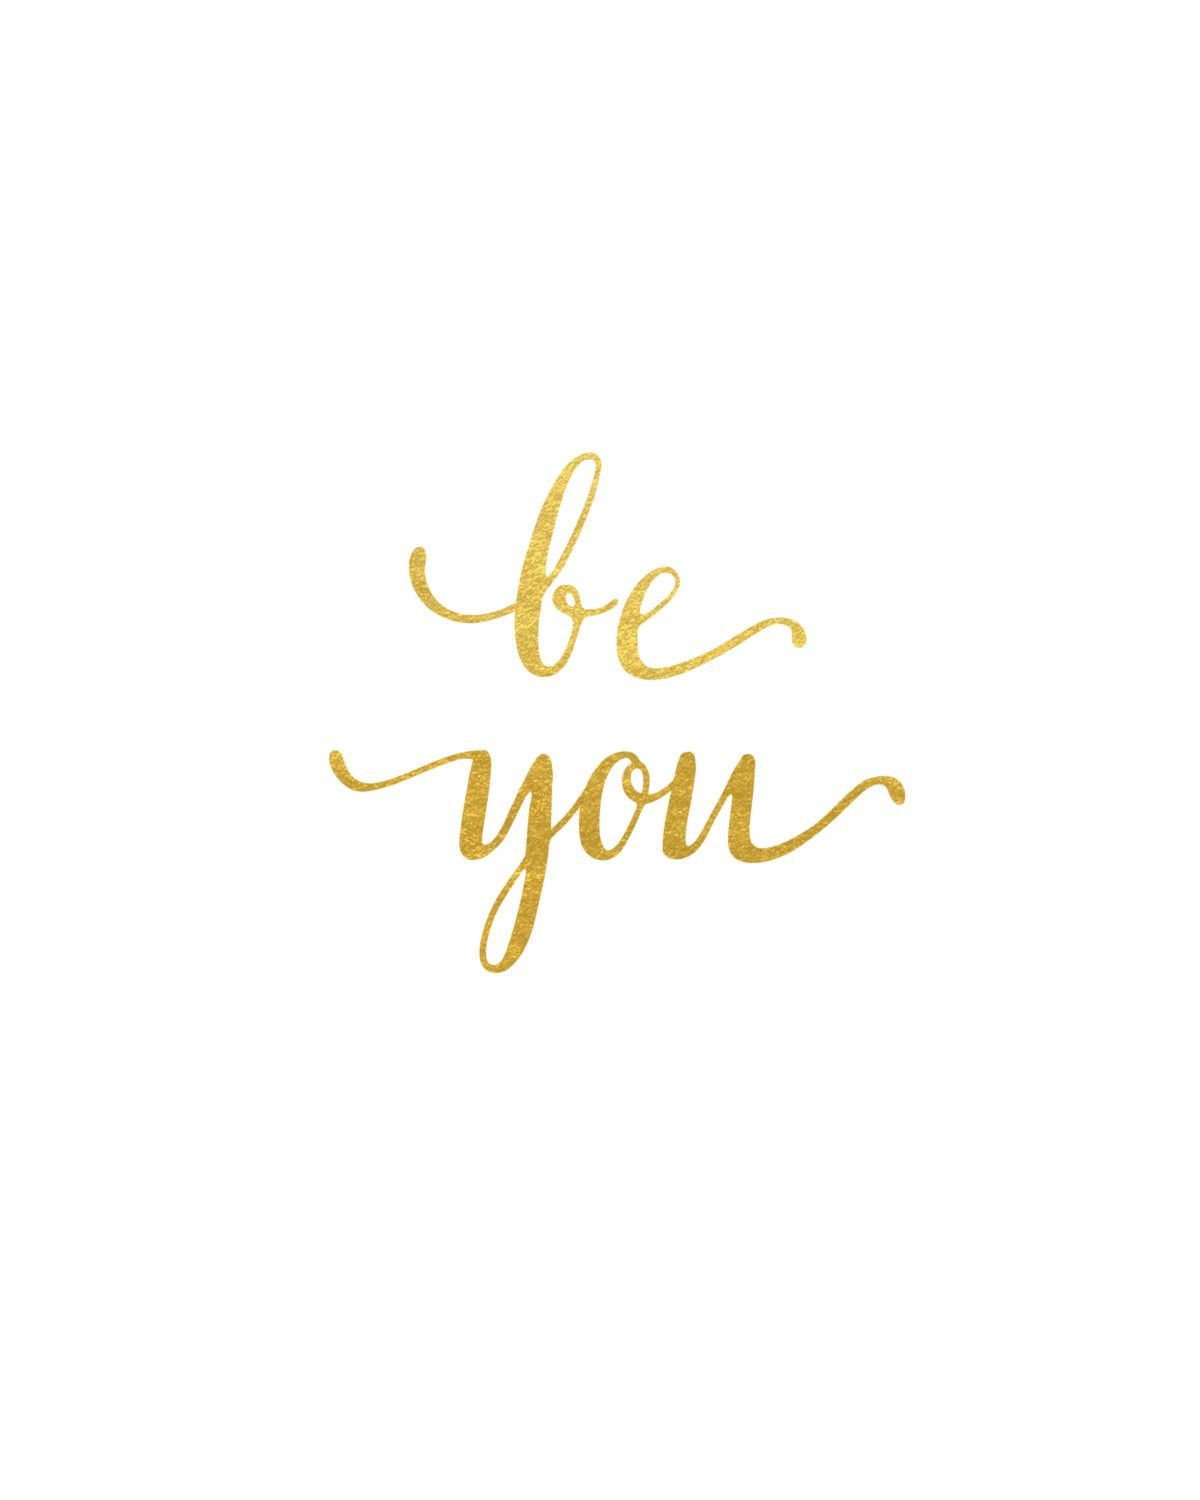 be you shiny gold foil printed on a quality 80 lb cardstock click